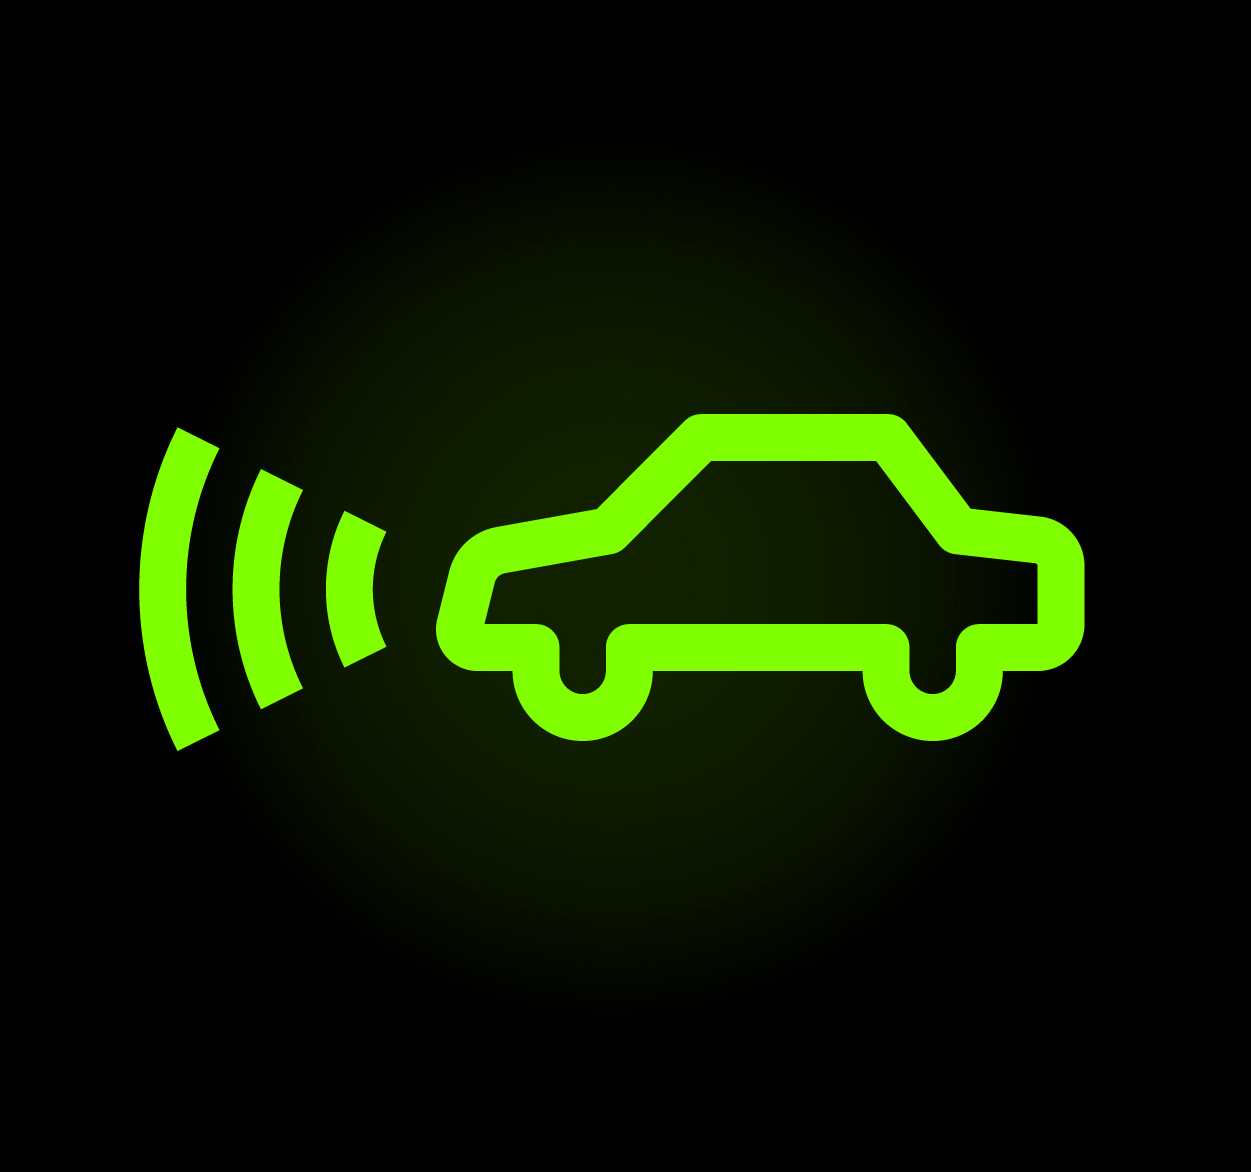 What do these car dashboard warning lights actually mean playbuzz biocorpaavc Images